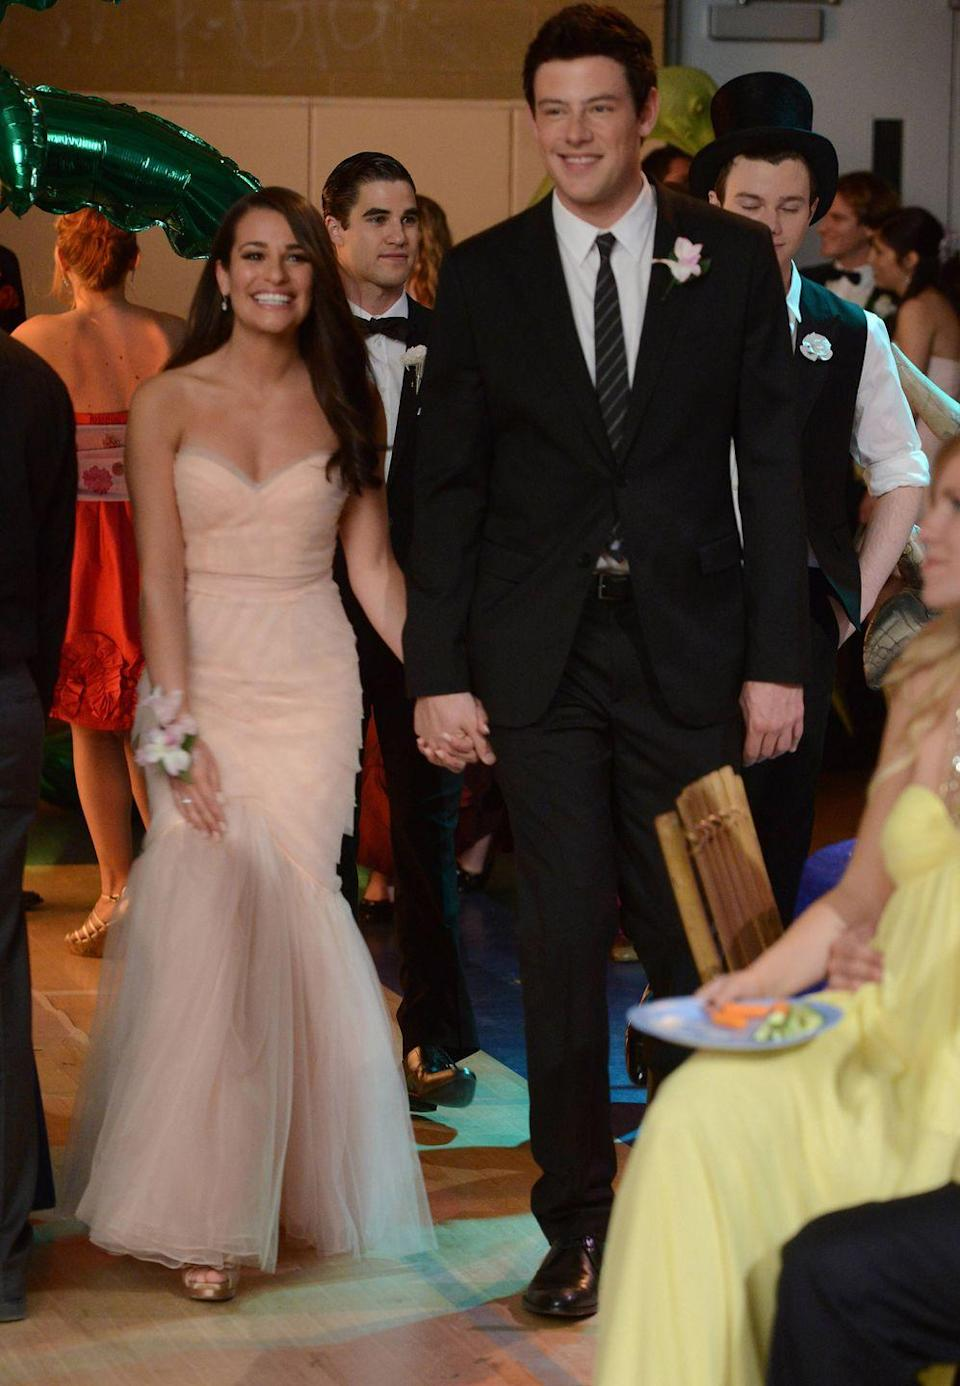 "<p>Rachel Berry's peach prom dress was fit for a queen, which it fitting since she was named Prom Queen at William McKinley High. </p><p><a class=""link rapid-noclick-resp"" href=""https://www.netflix.com/title/70143843"" rel=""nofollow noopener"" target=""_blank"" data-ylk=""slk:STREAM NOW"">STREAM NOW</a></p>"